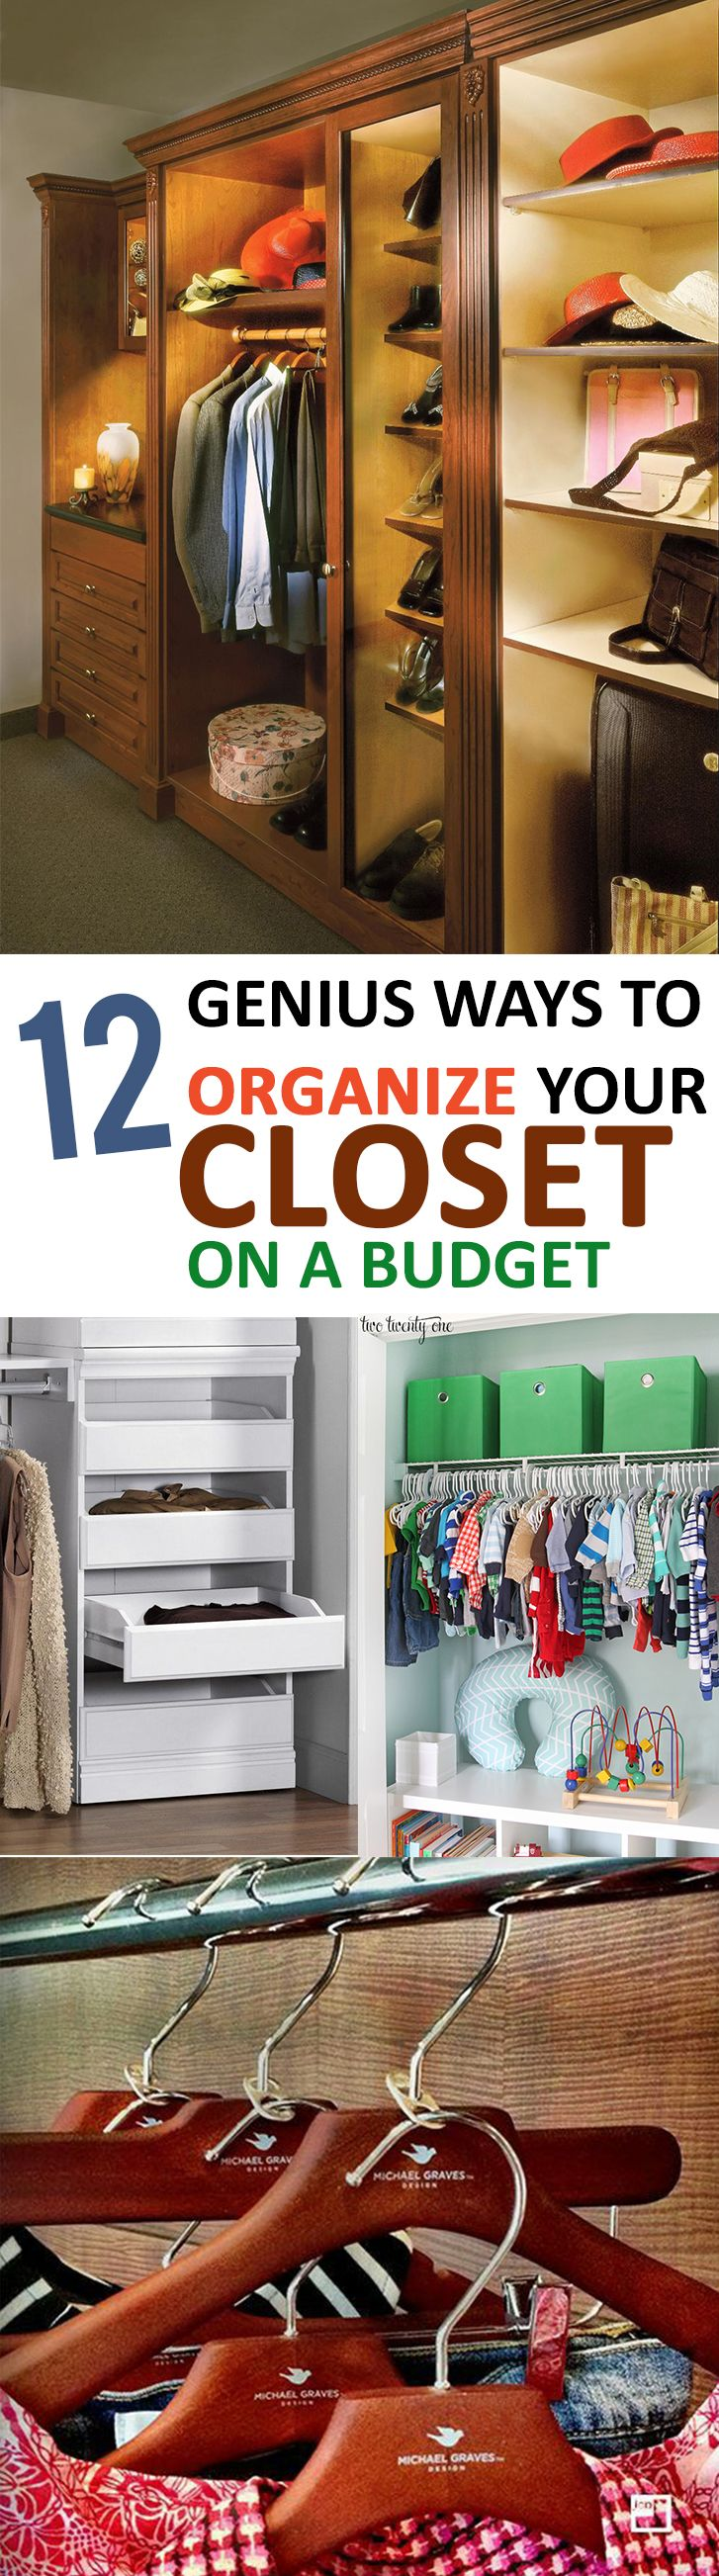 Simple small closet organization tips smart home decorating ideas - 12 Genius Ways To Organize Your Closet On A Budget